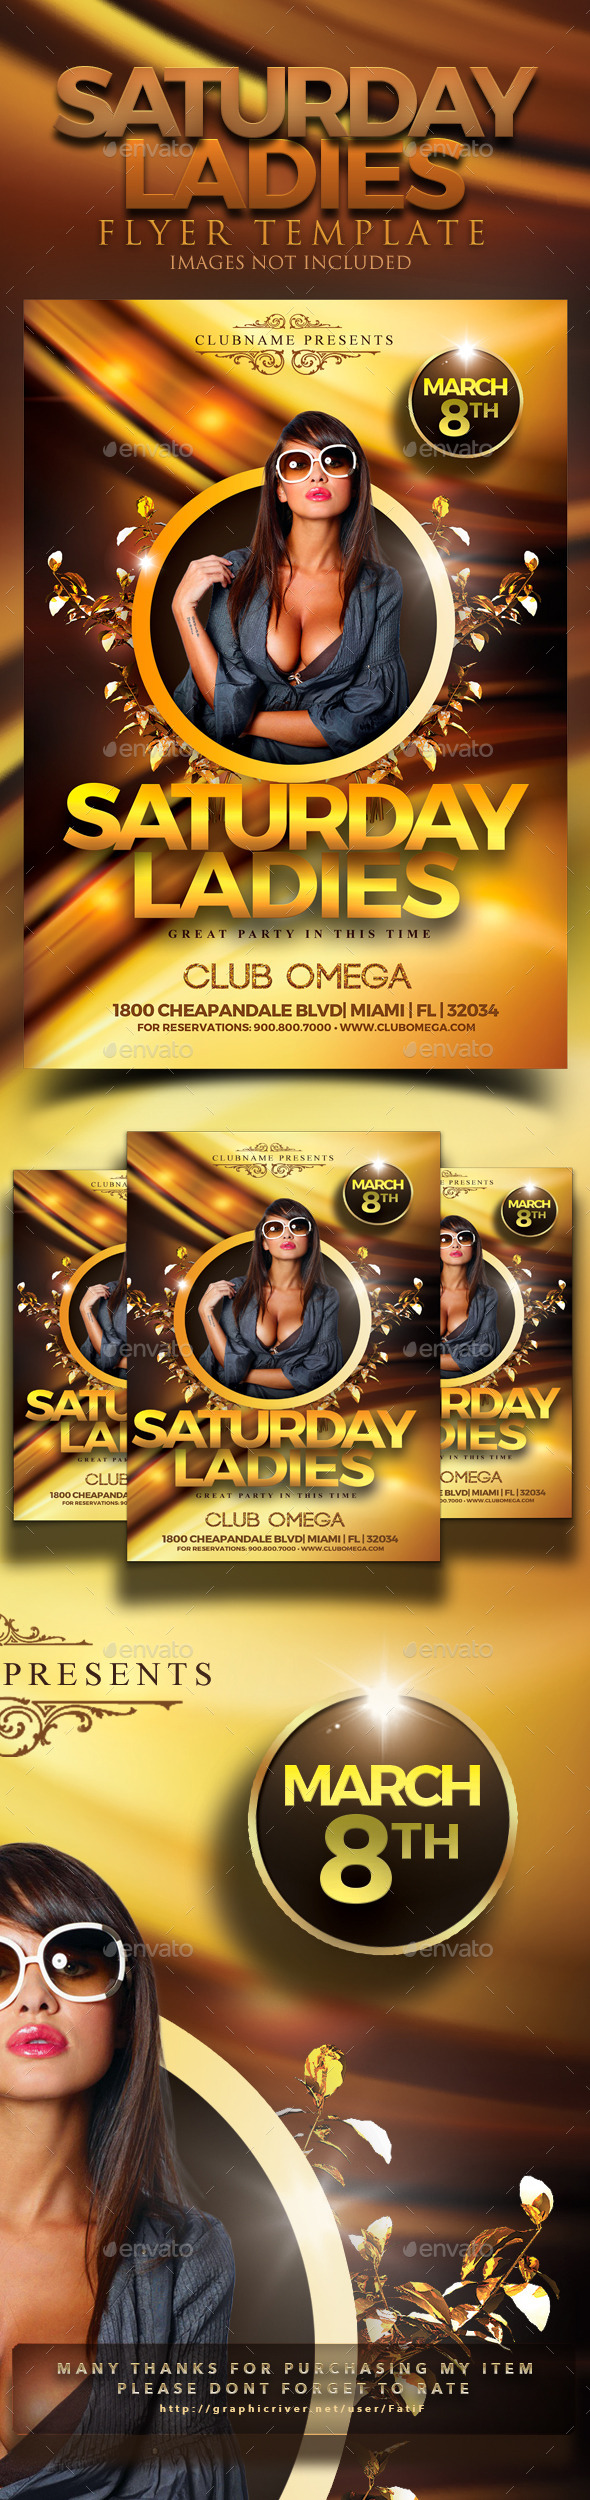 Saturday Ladies Flyer Template - Clubs & Parties Events